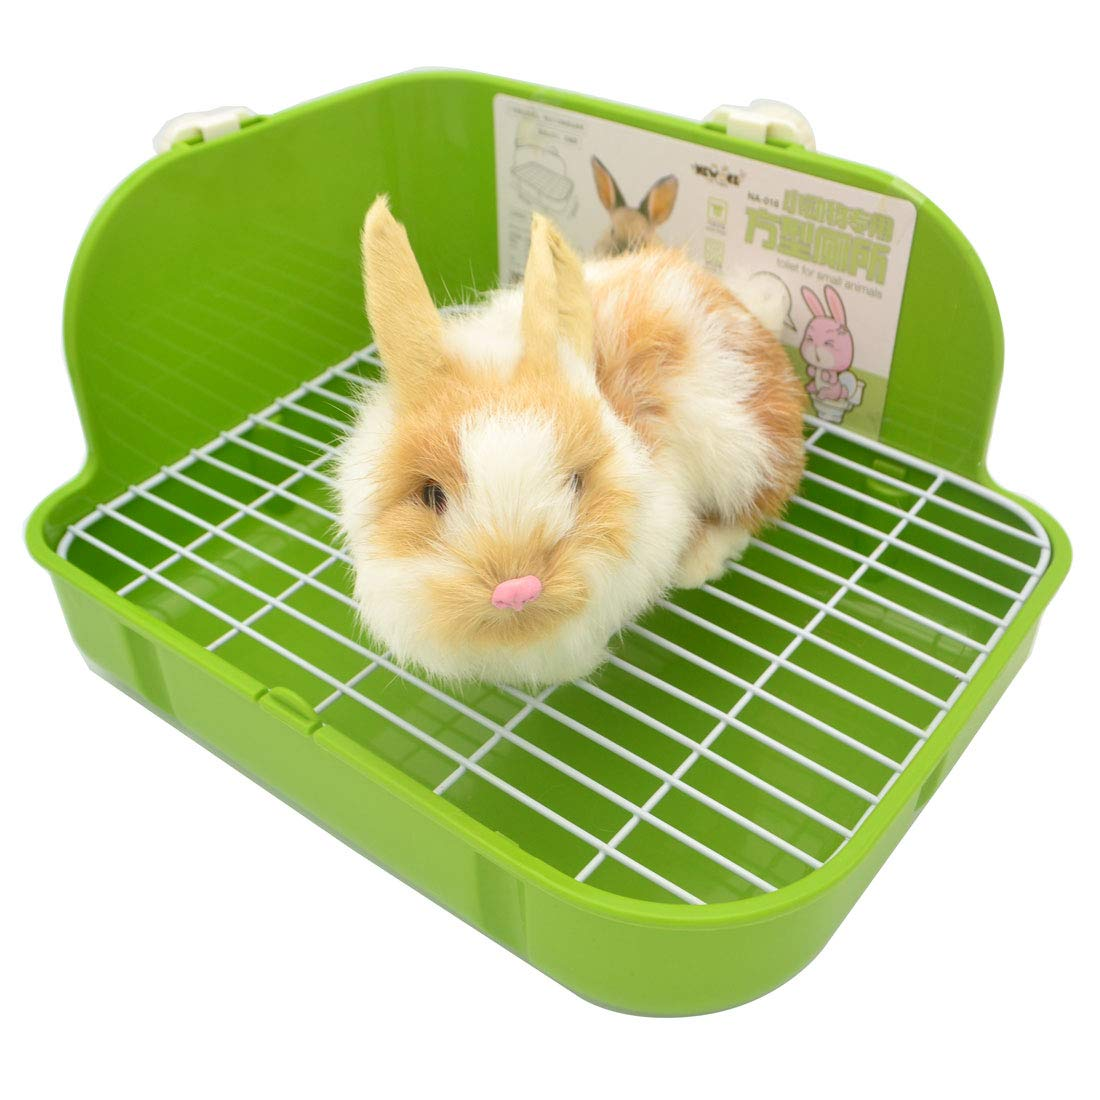 SunshineBio Rabbit Litter Box Toilet for Small Animal Bunny Rabbits Guinea Pig Galesaur Ferrets Corner Litter Pan Potty Trainer with Stainless Steel Panel Small Pets Cage Toilet Bedding Box (Green) by SunshineBio